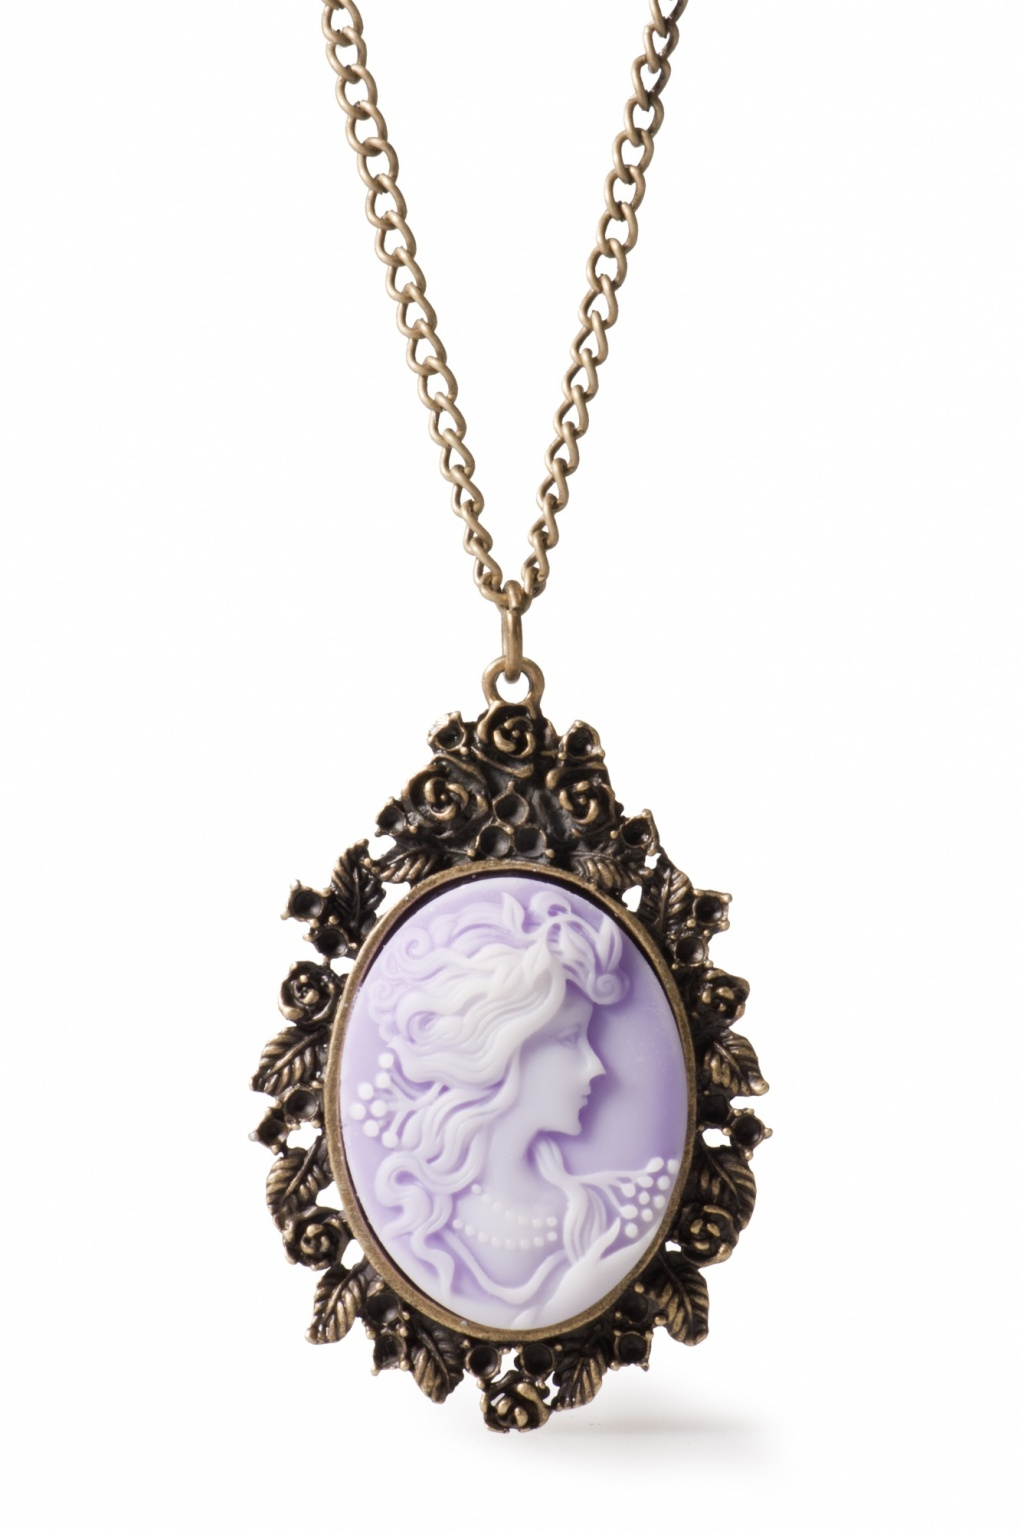 Camee Rose lila vintage necklace